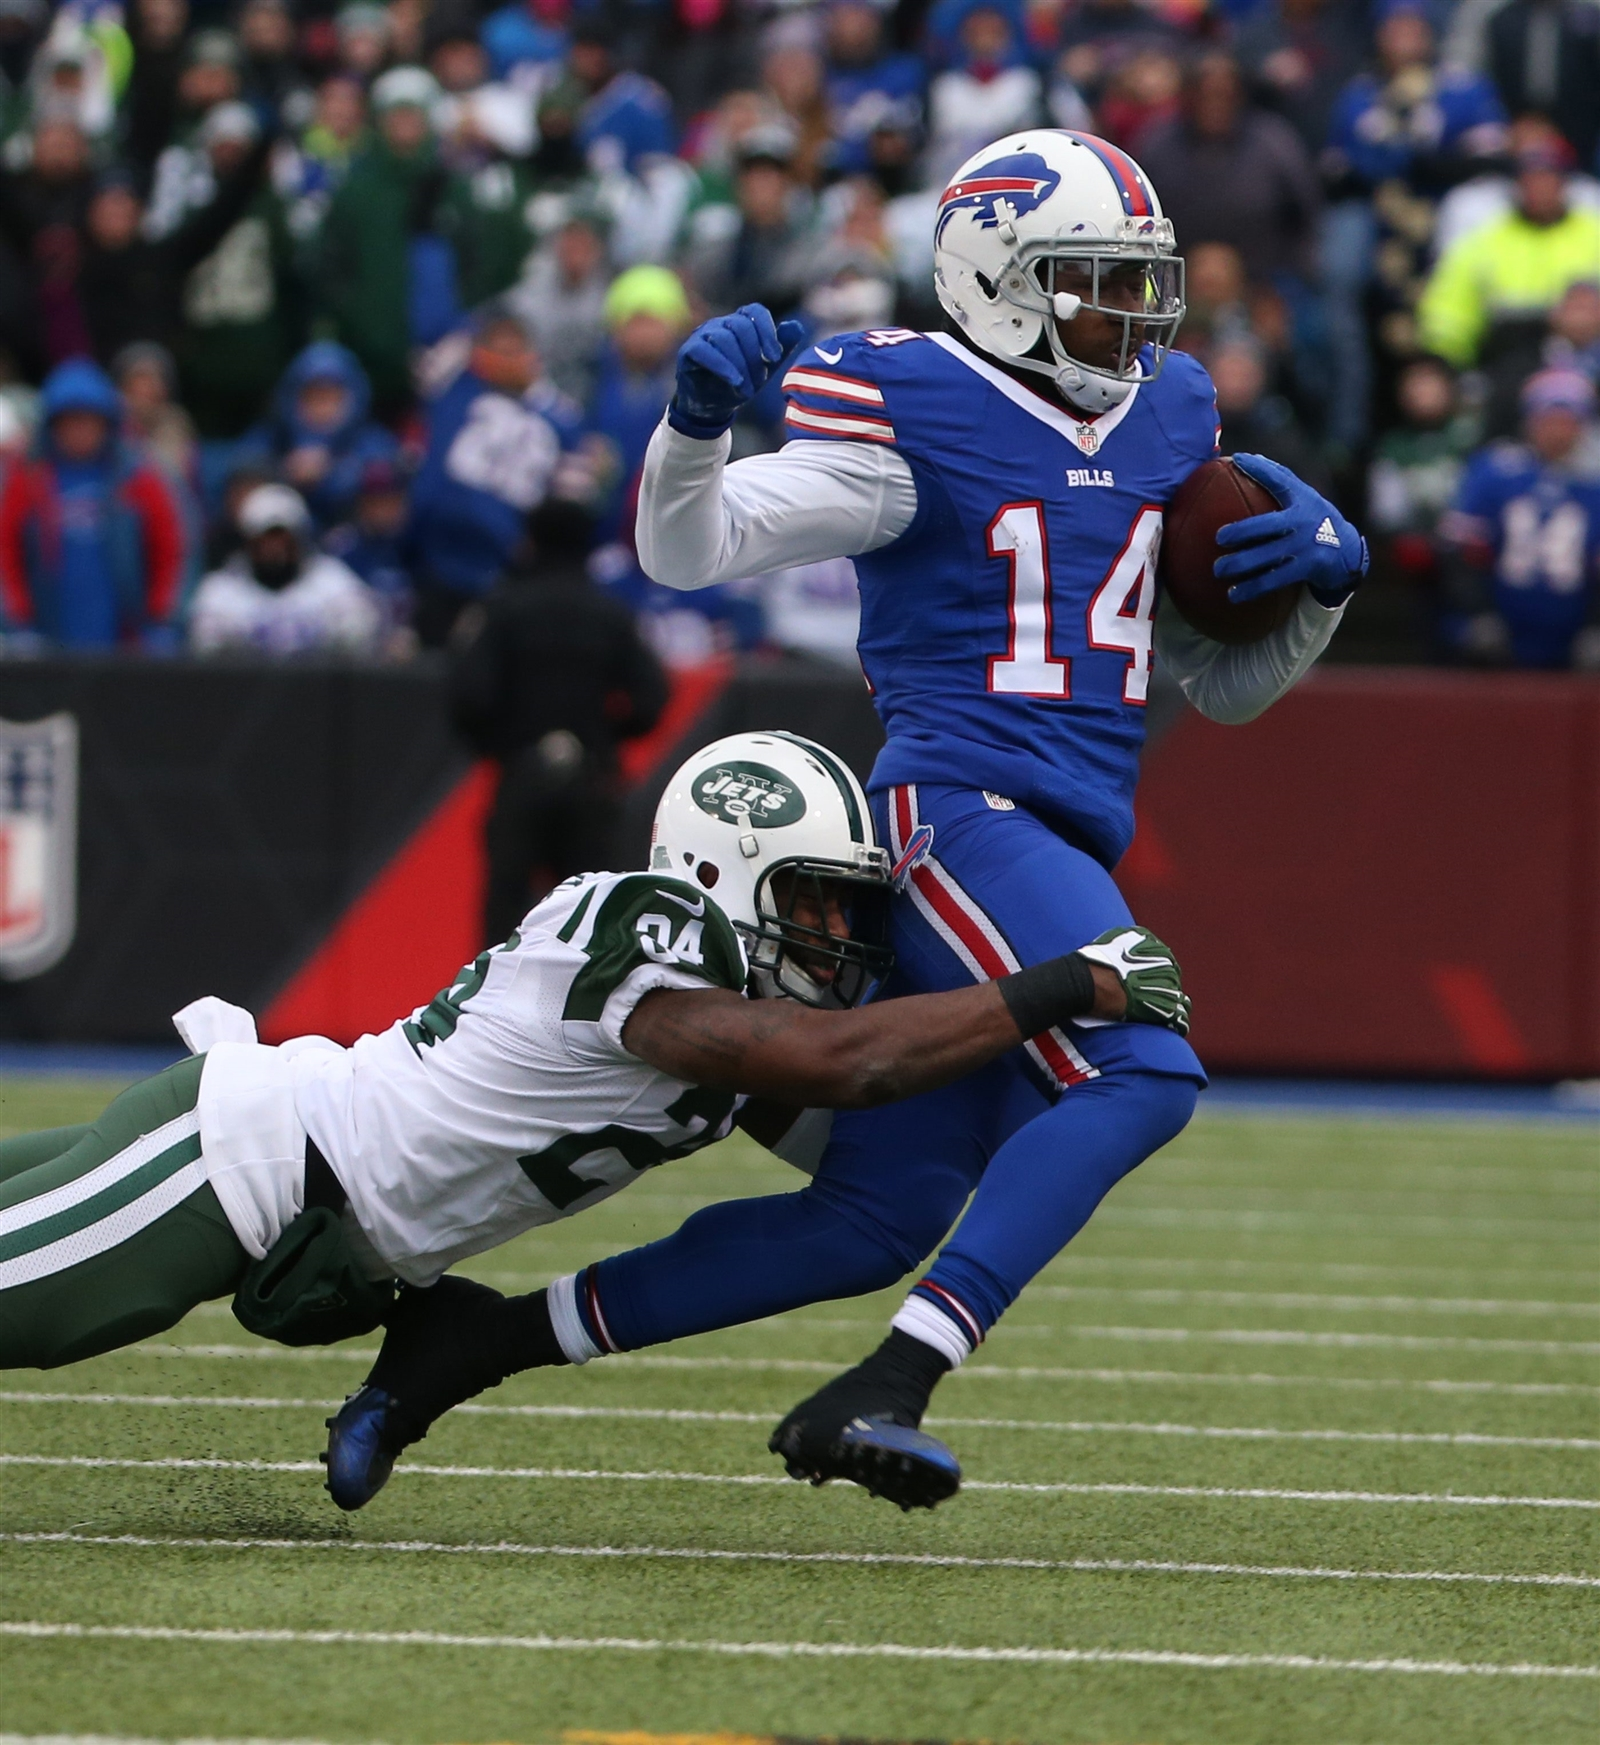 1. Maybe Darrelle Revis isnu2019t Darrelle Revis anymore (continued) ... In the 2015 regular-season finale against Buffalo, Bills receiver Sammy Watkins caught 11 catches for 136 yards (he's pictured beating Revis for a first-down catch). While Revis may not be responsible for all of those catches and yards, itu2019s still remarkable that receivers he generally lines up against have had that type of production. It just might be time for Jets coach Todd Bowles to admit that Revis simply isnu2019t the type of player who can single handedly take the opponentu2019s No. 1 receiver out of the game.